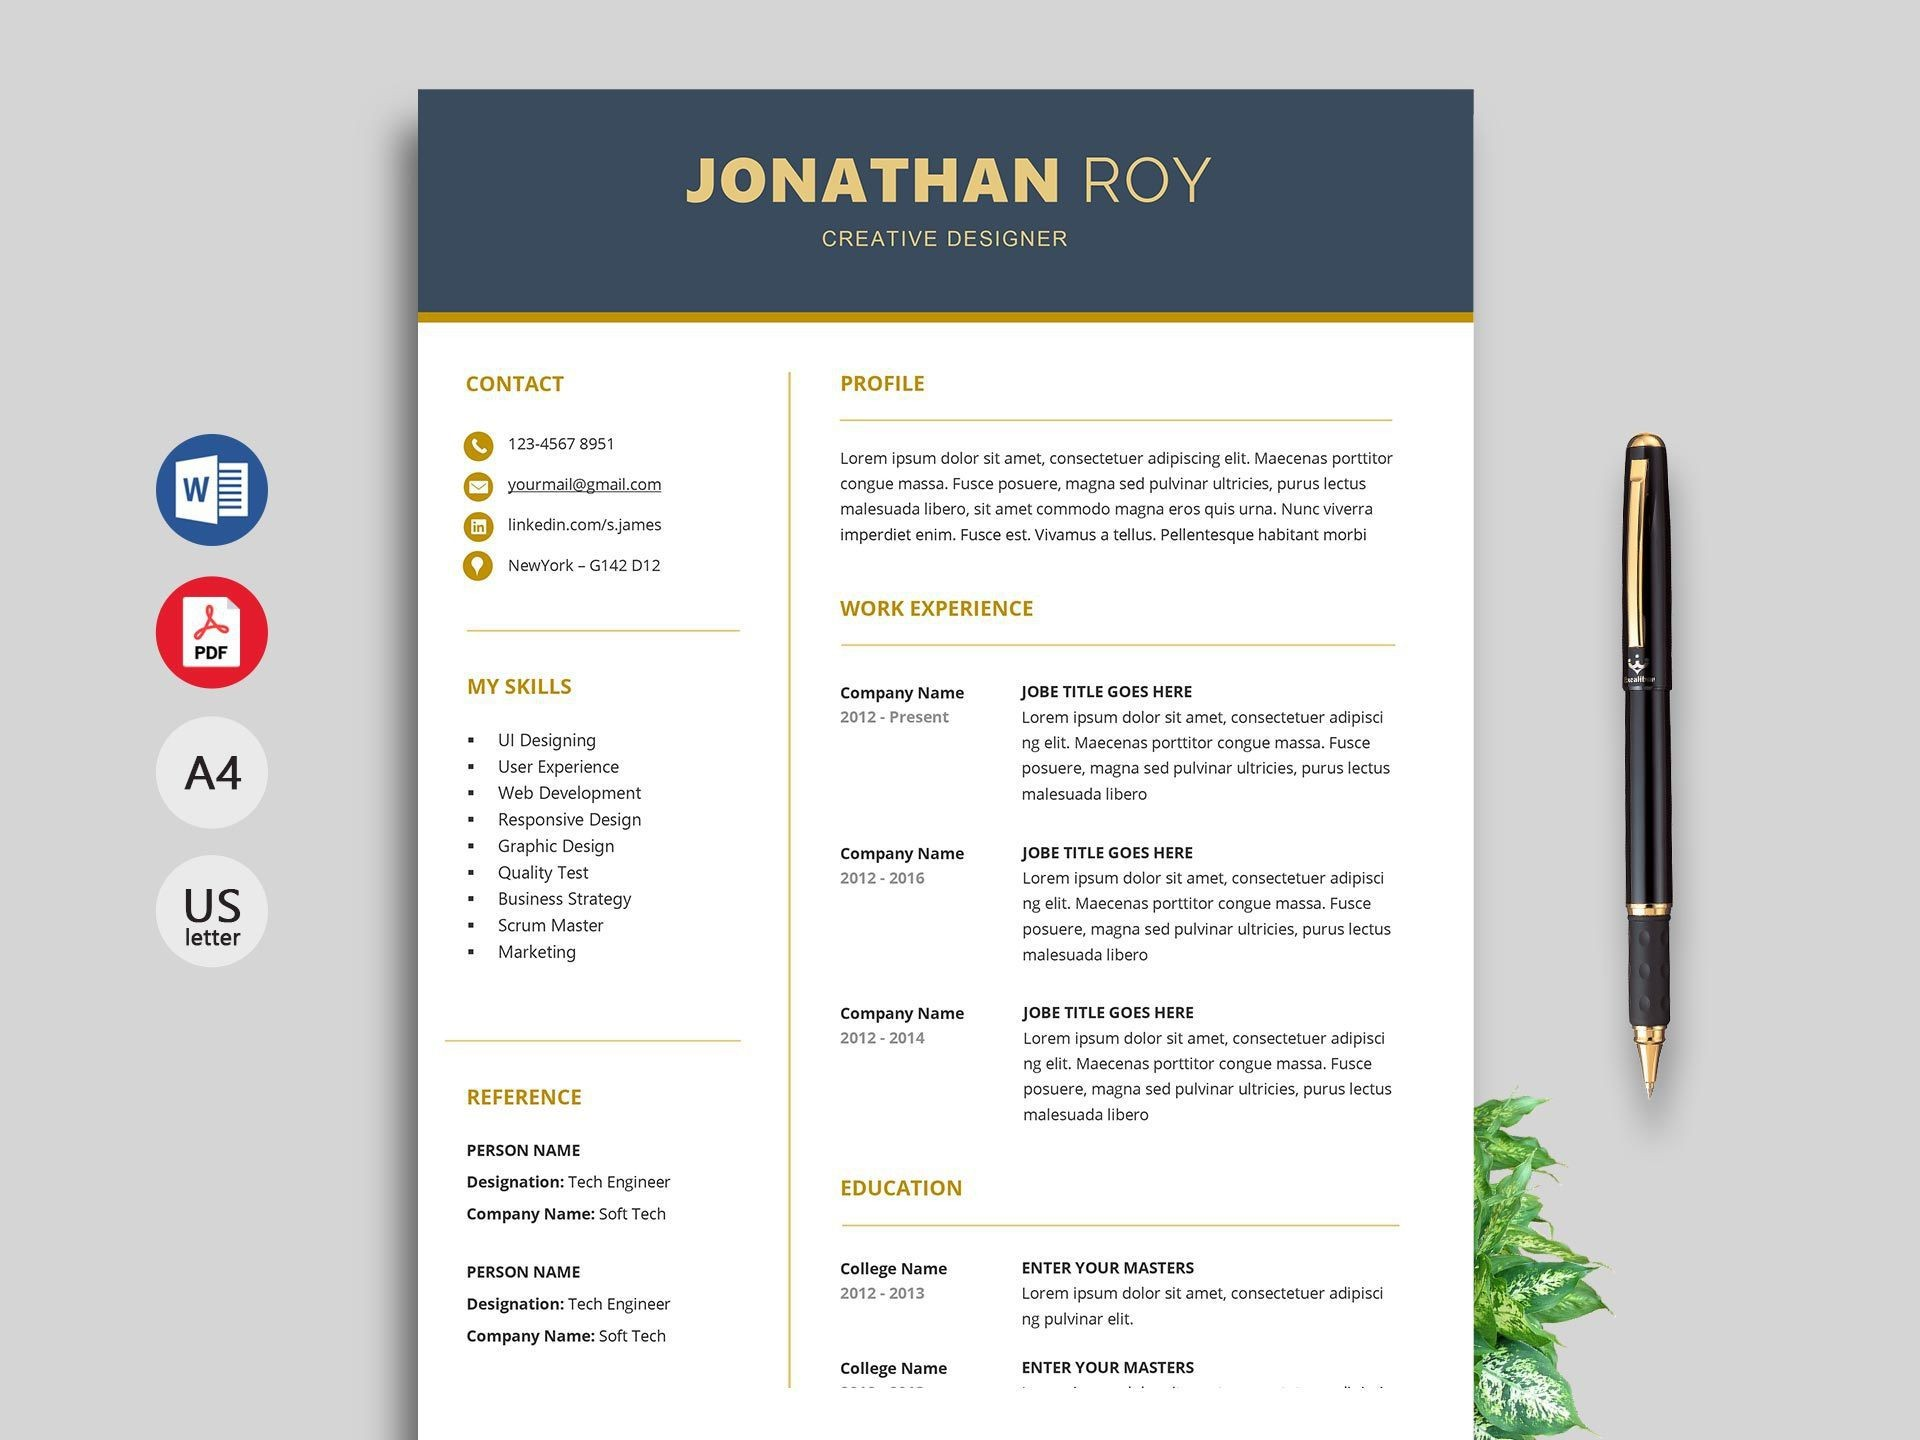 000 Unusual Word Resume Template Free Download Example  M Creative Curriculum Vitae Cv1920